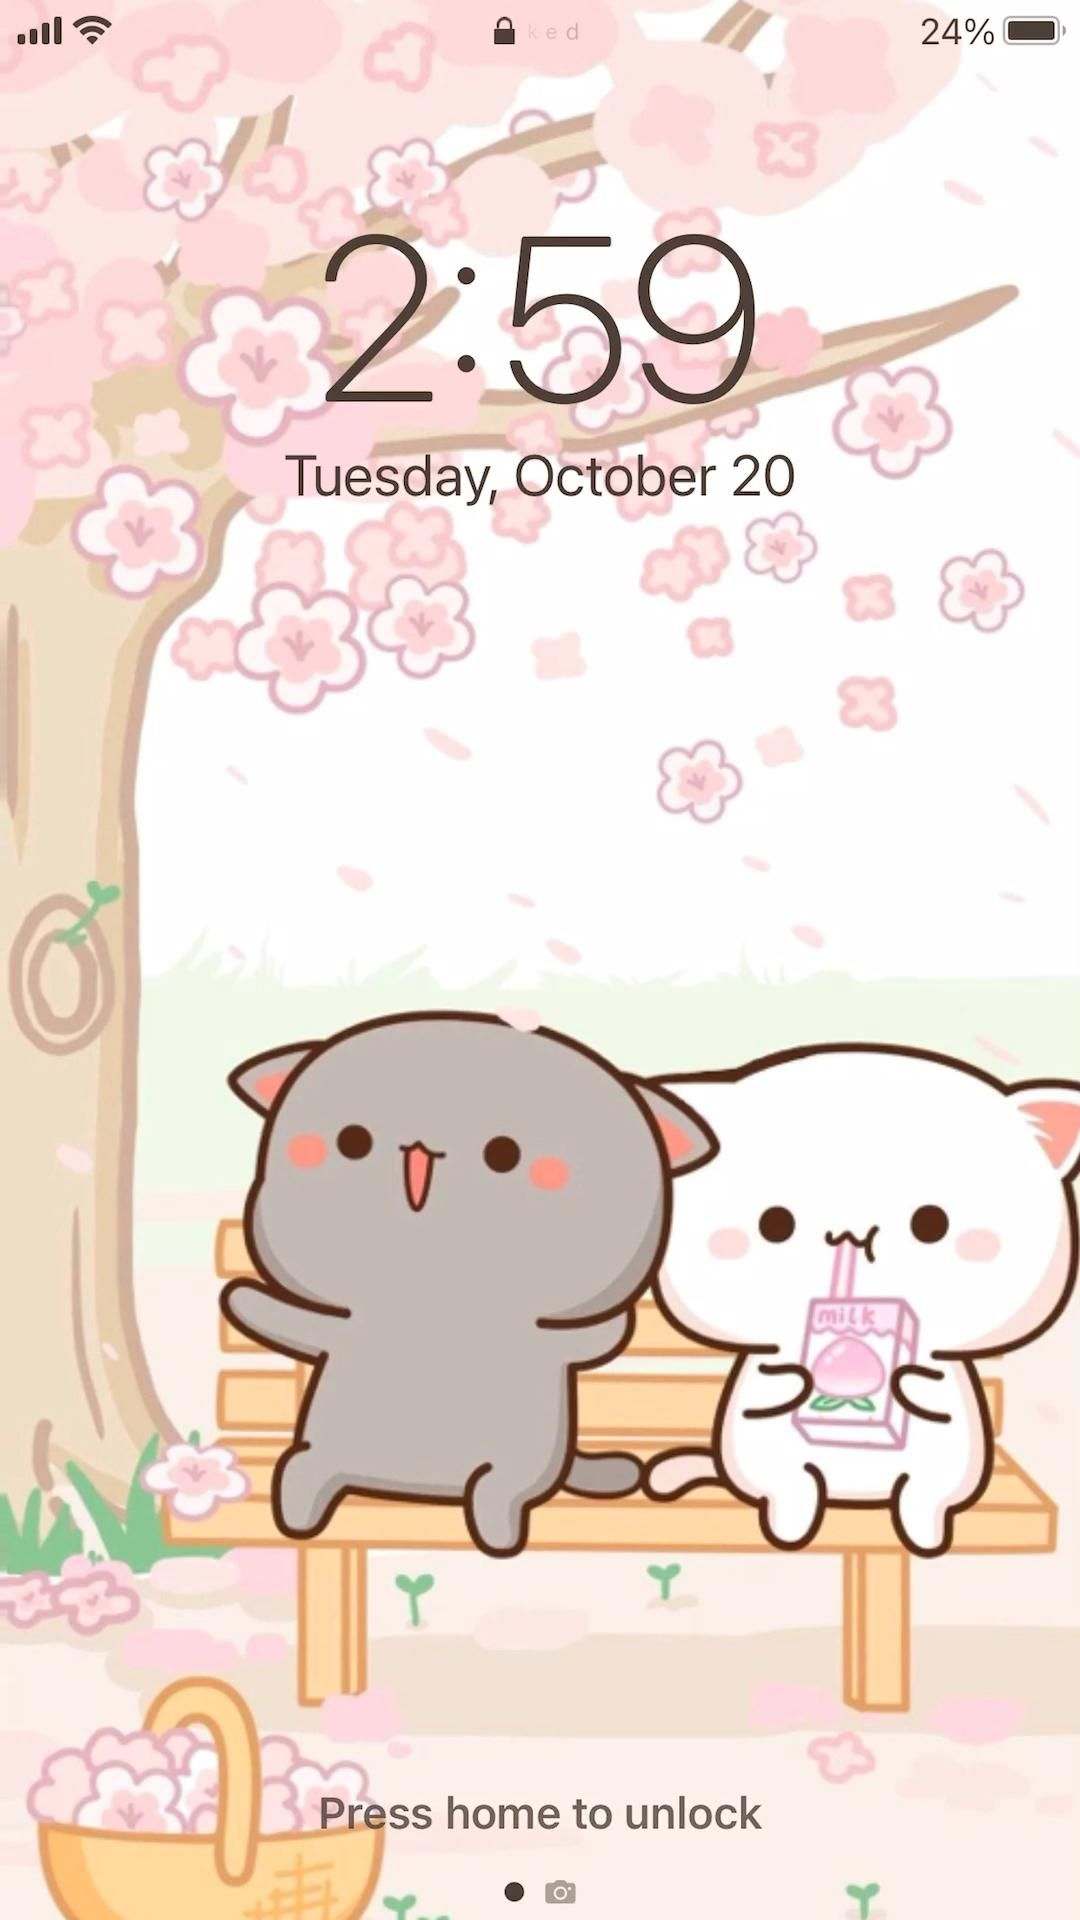 Cute Aesthetic Mochi Peach Cat App Icons